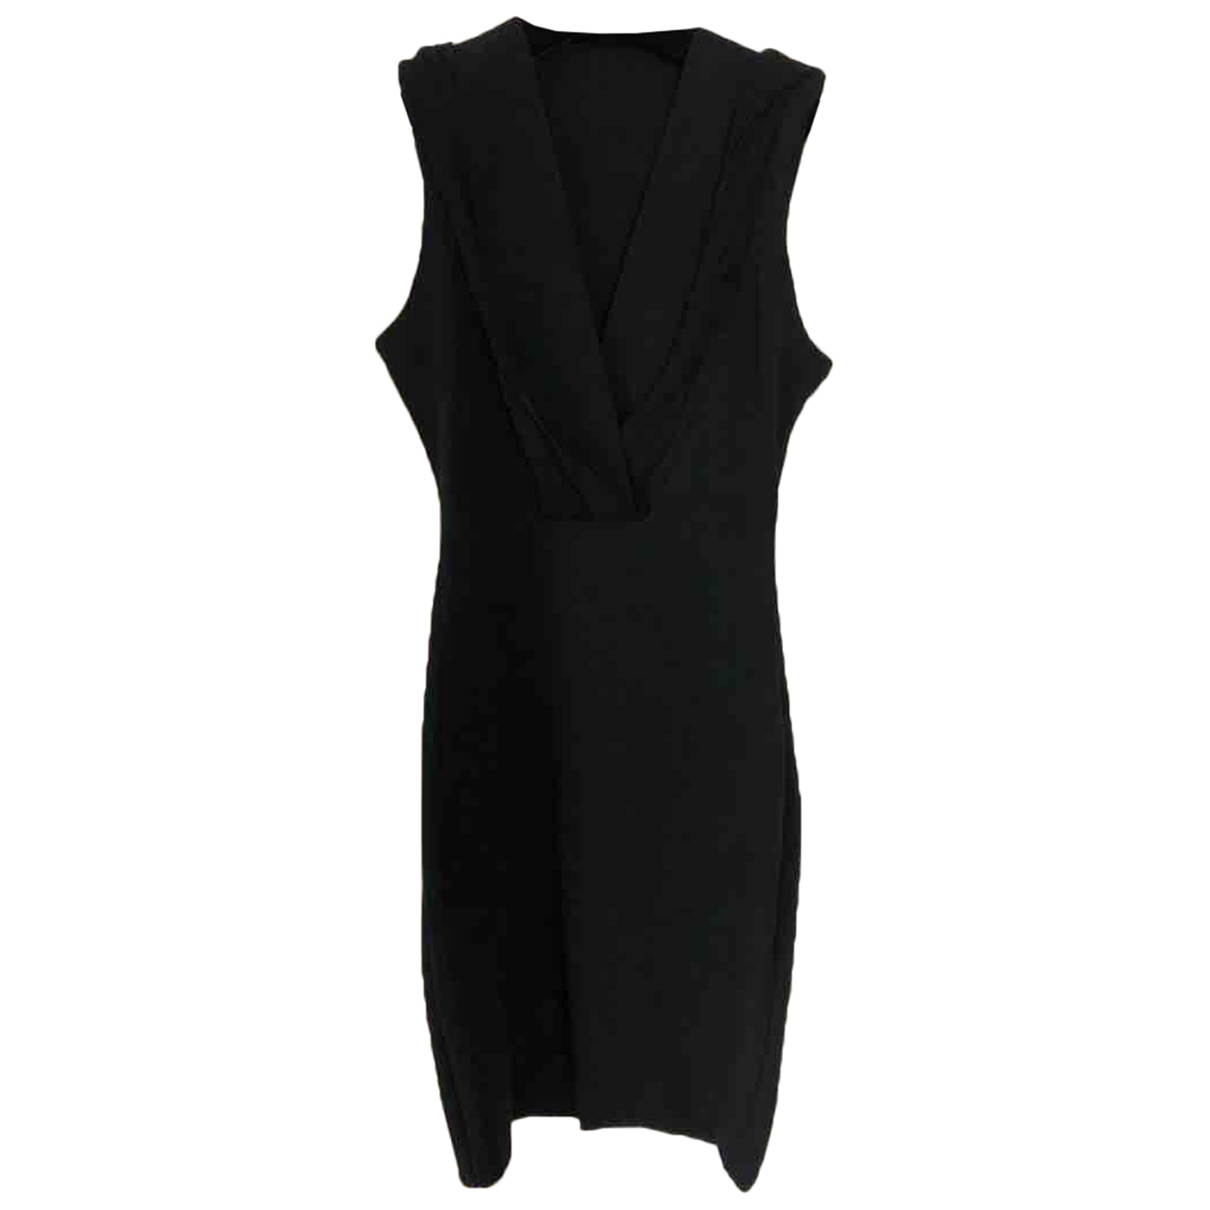 Givenchy \N Black dress for Women M International